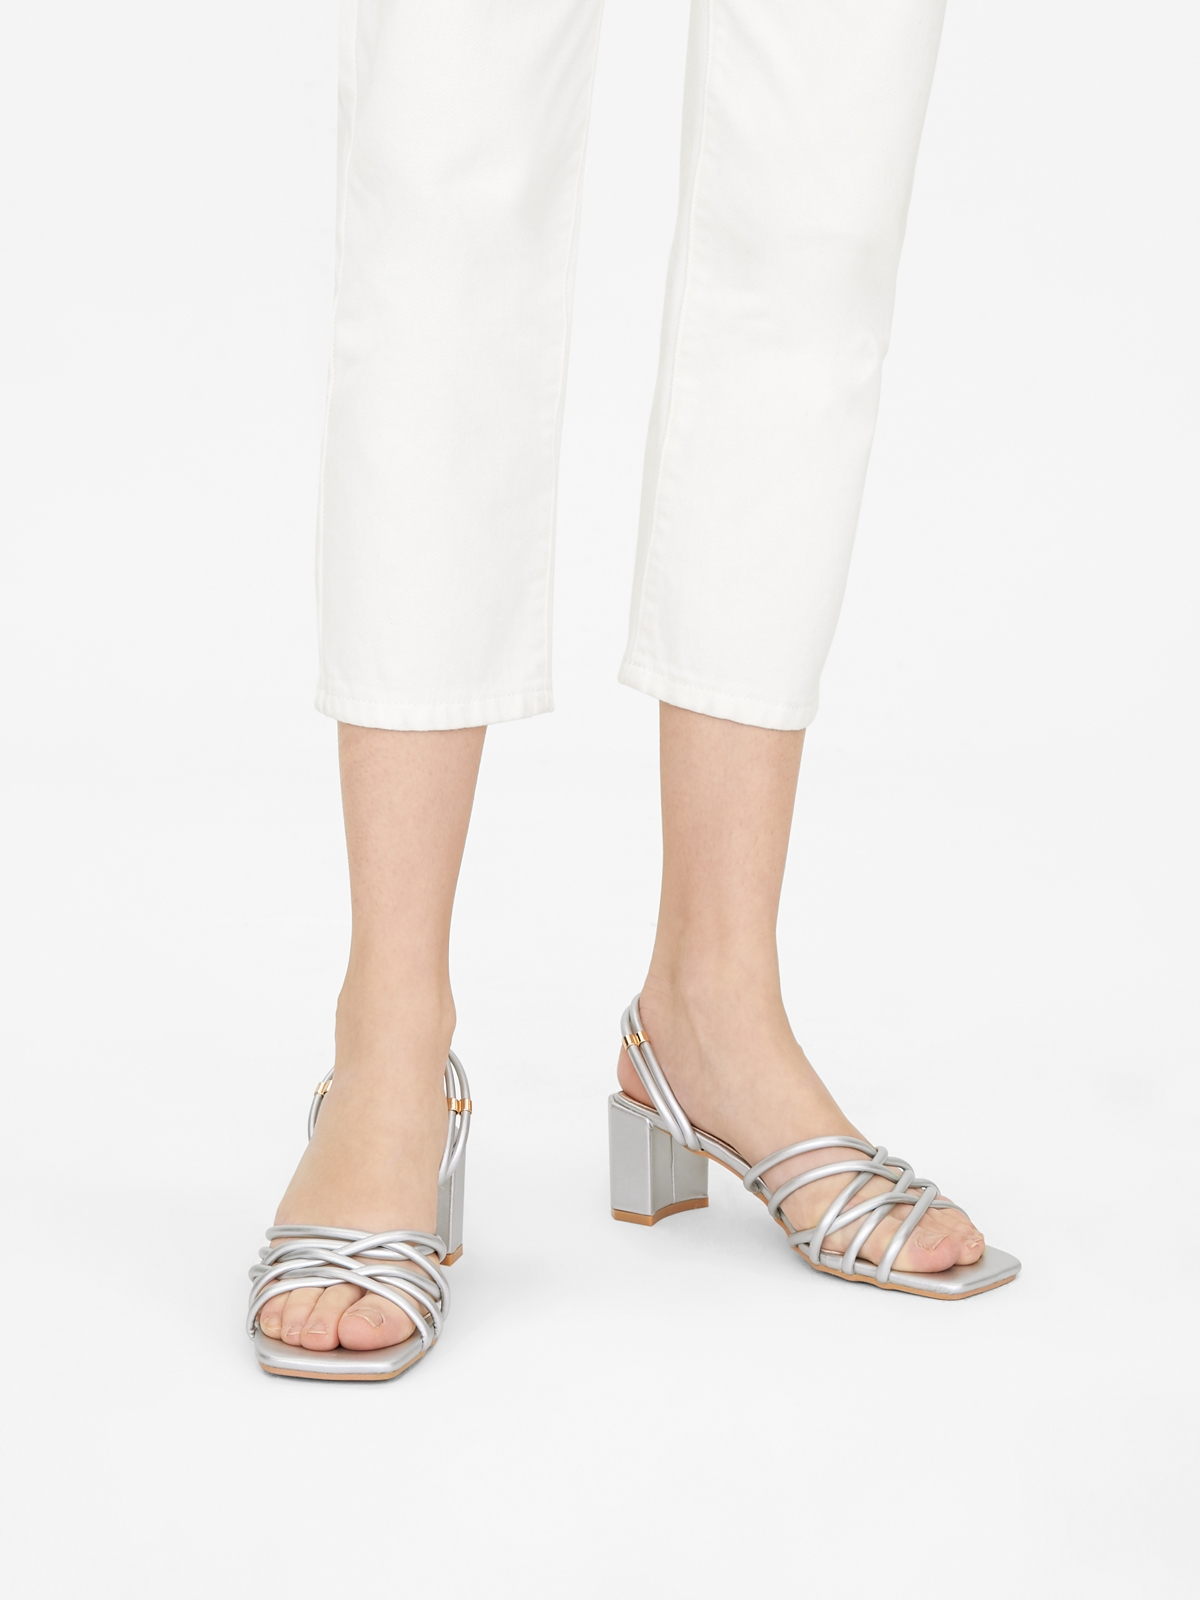 Rocket Strappy Squared Toe Heels Silver